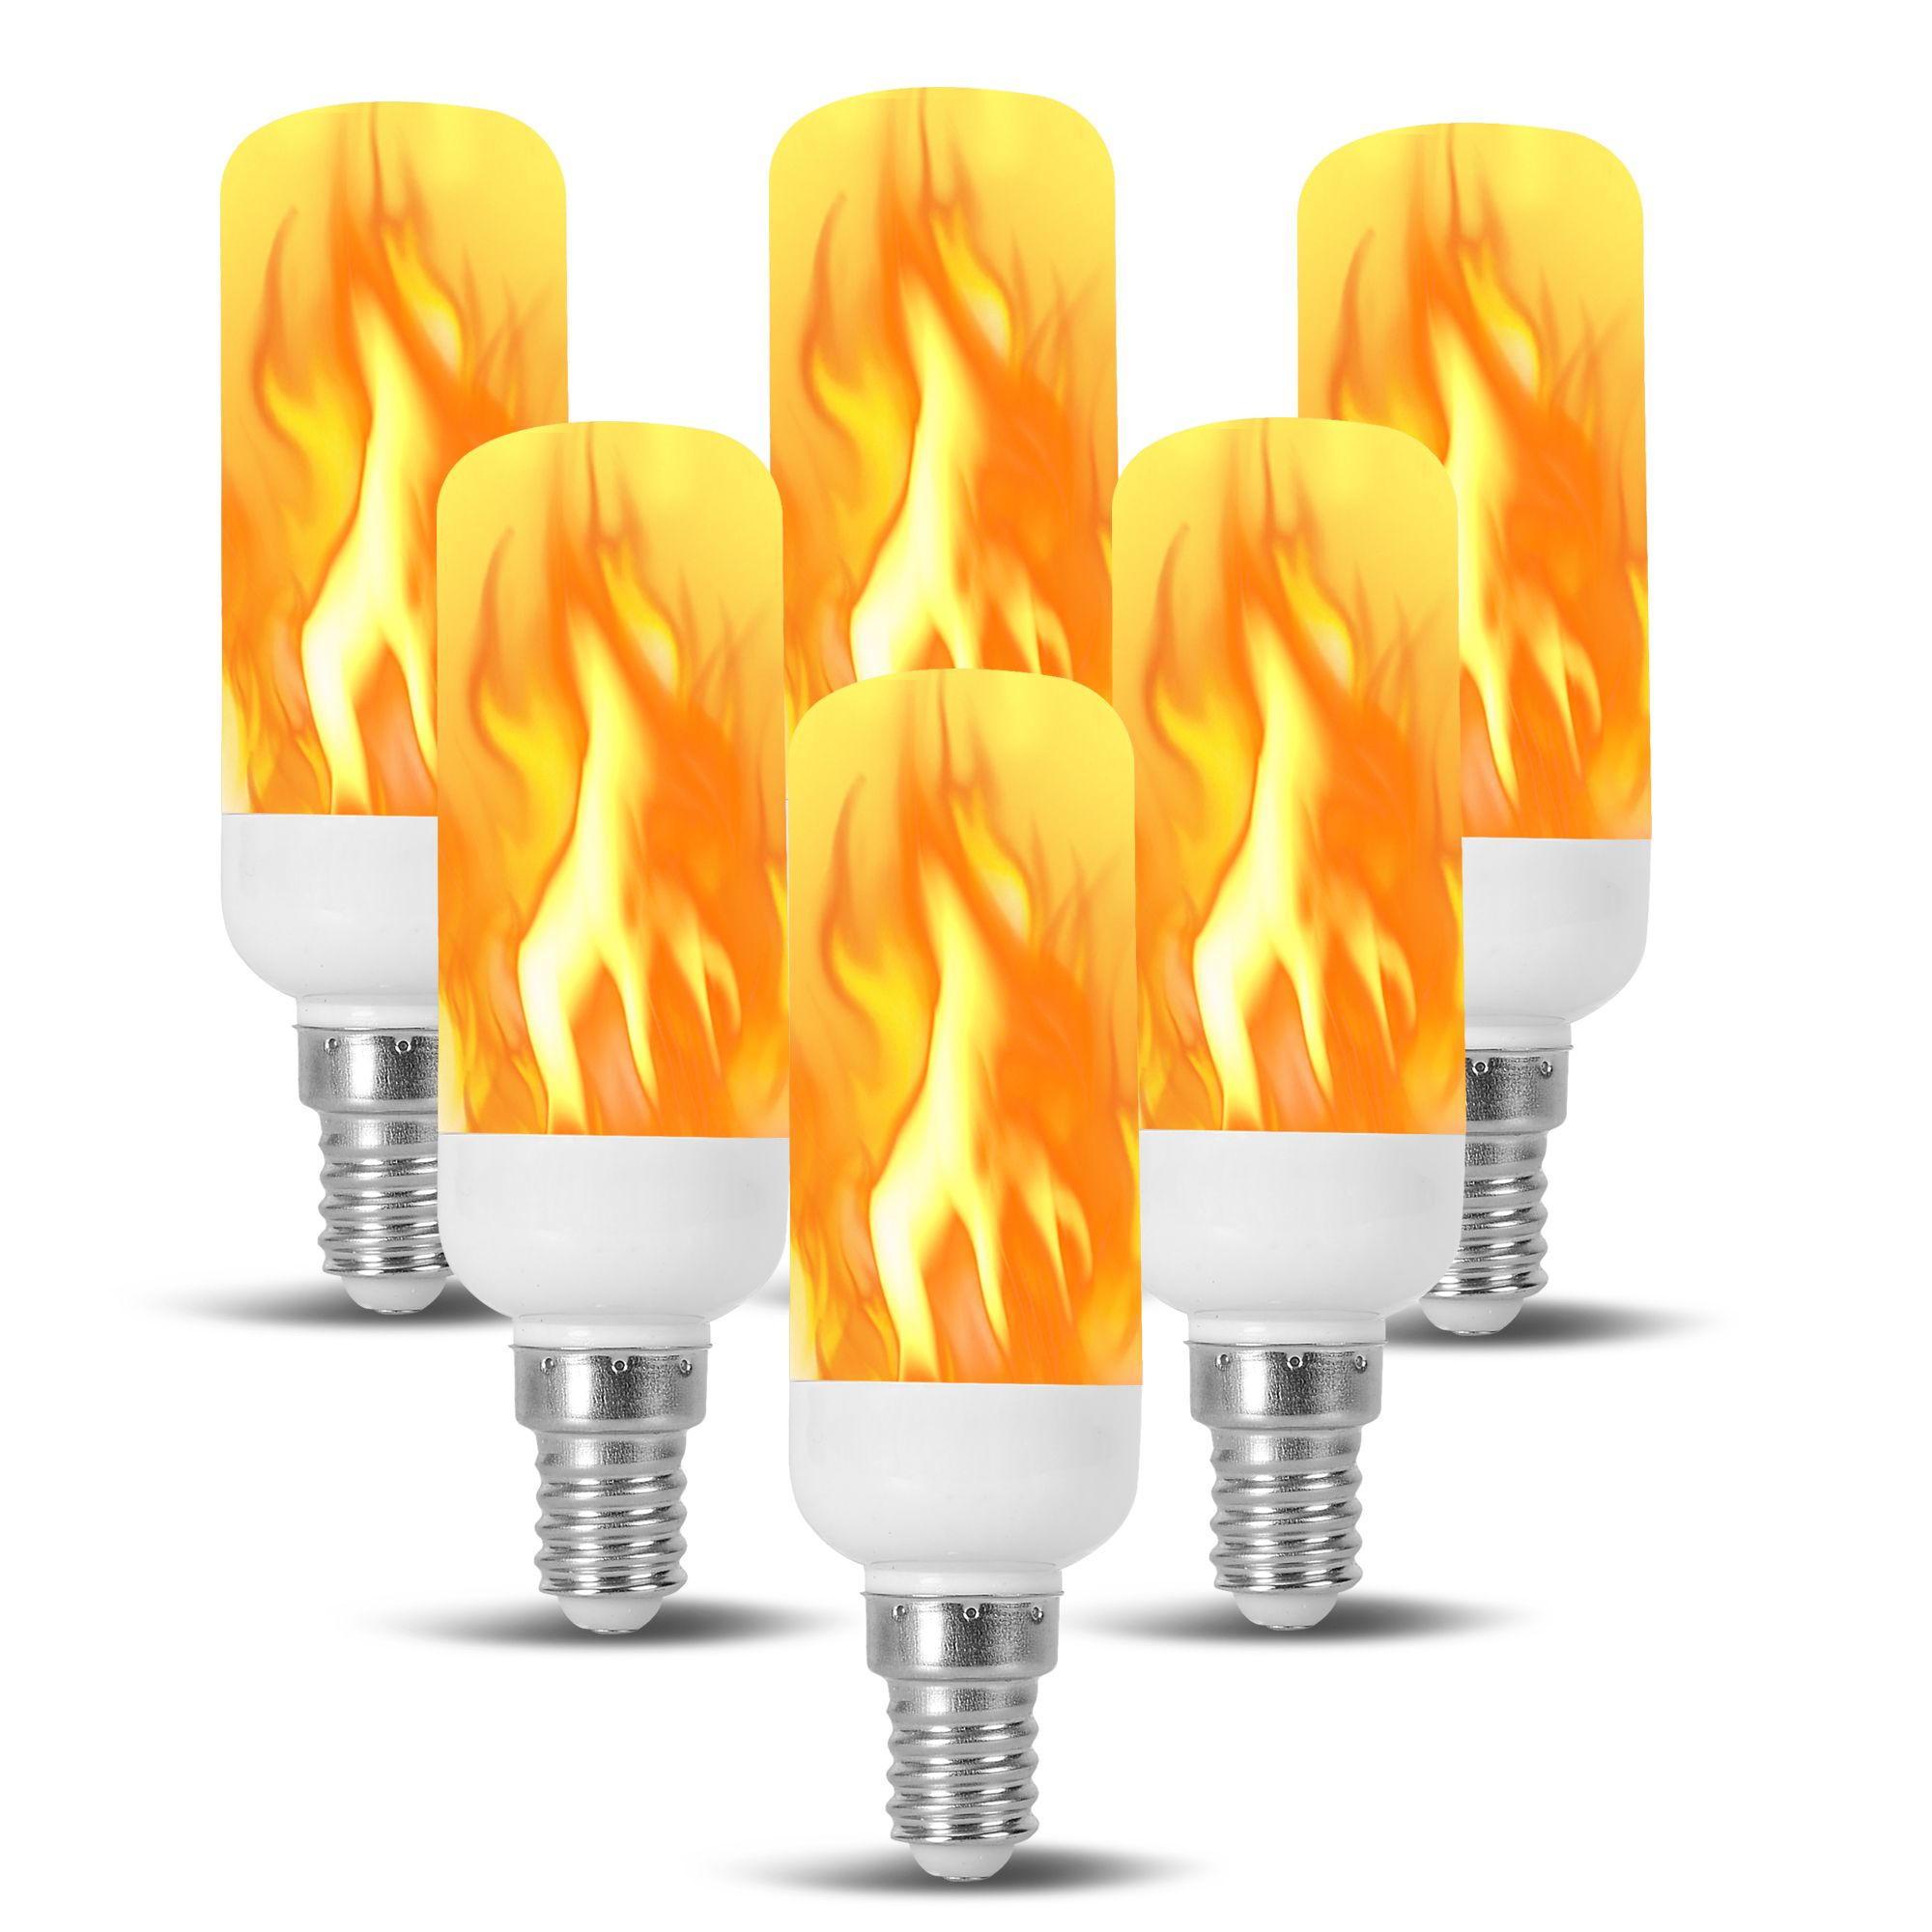 Flame Jdd Tubular Shape Led Fire Candle Light Bulb Flaming Flicker E12 E14 Light Bulb Candle Fire Candle Bulb